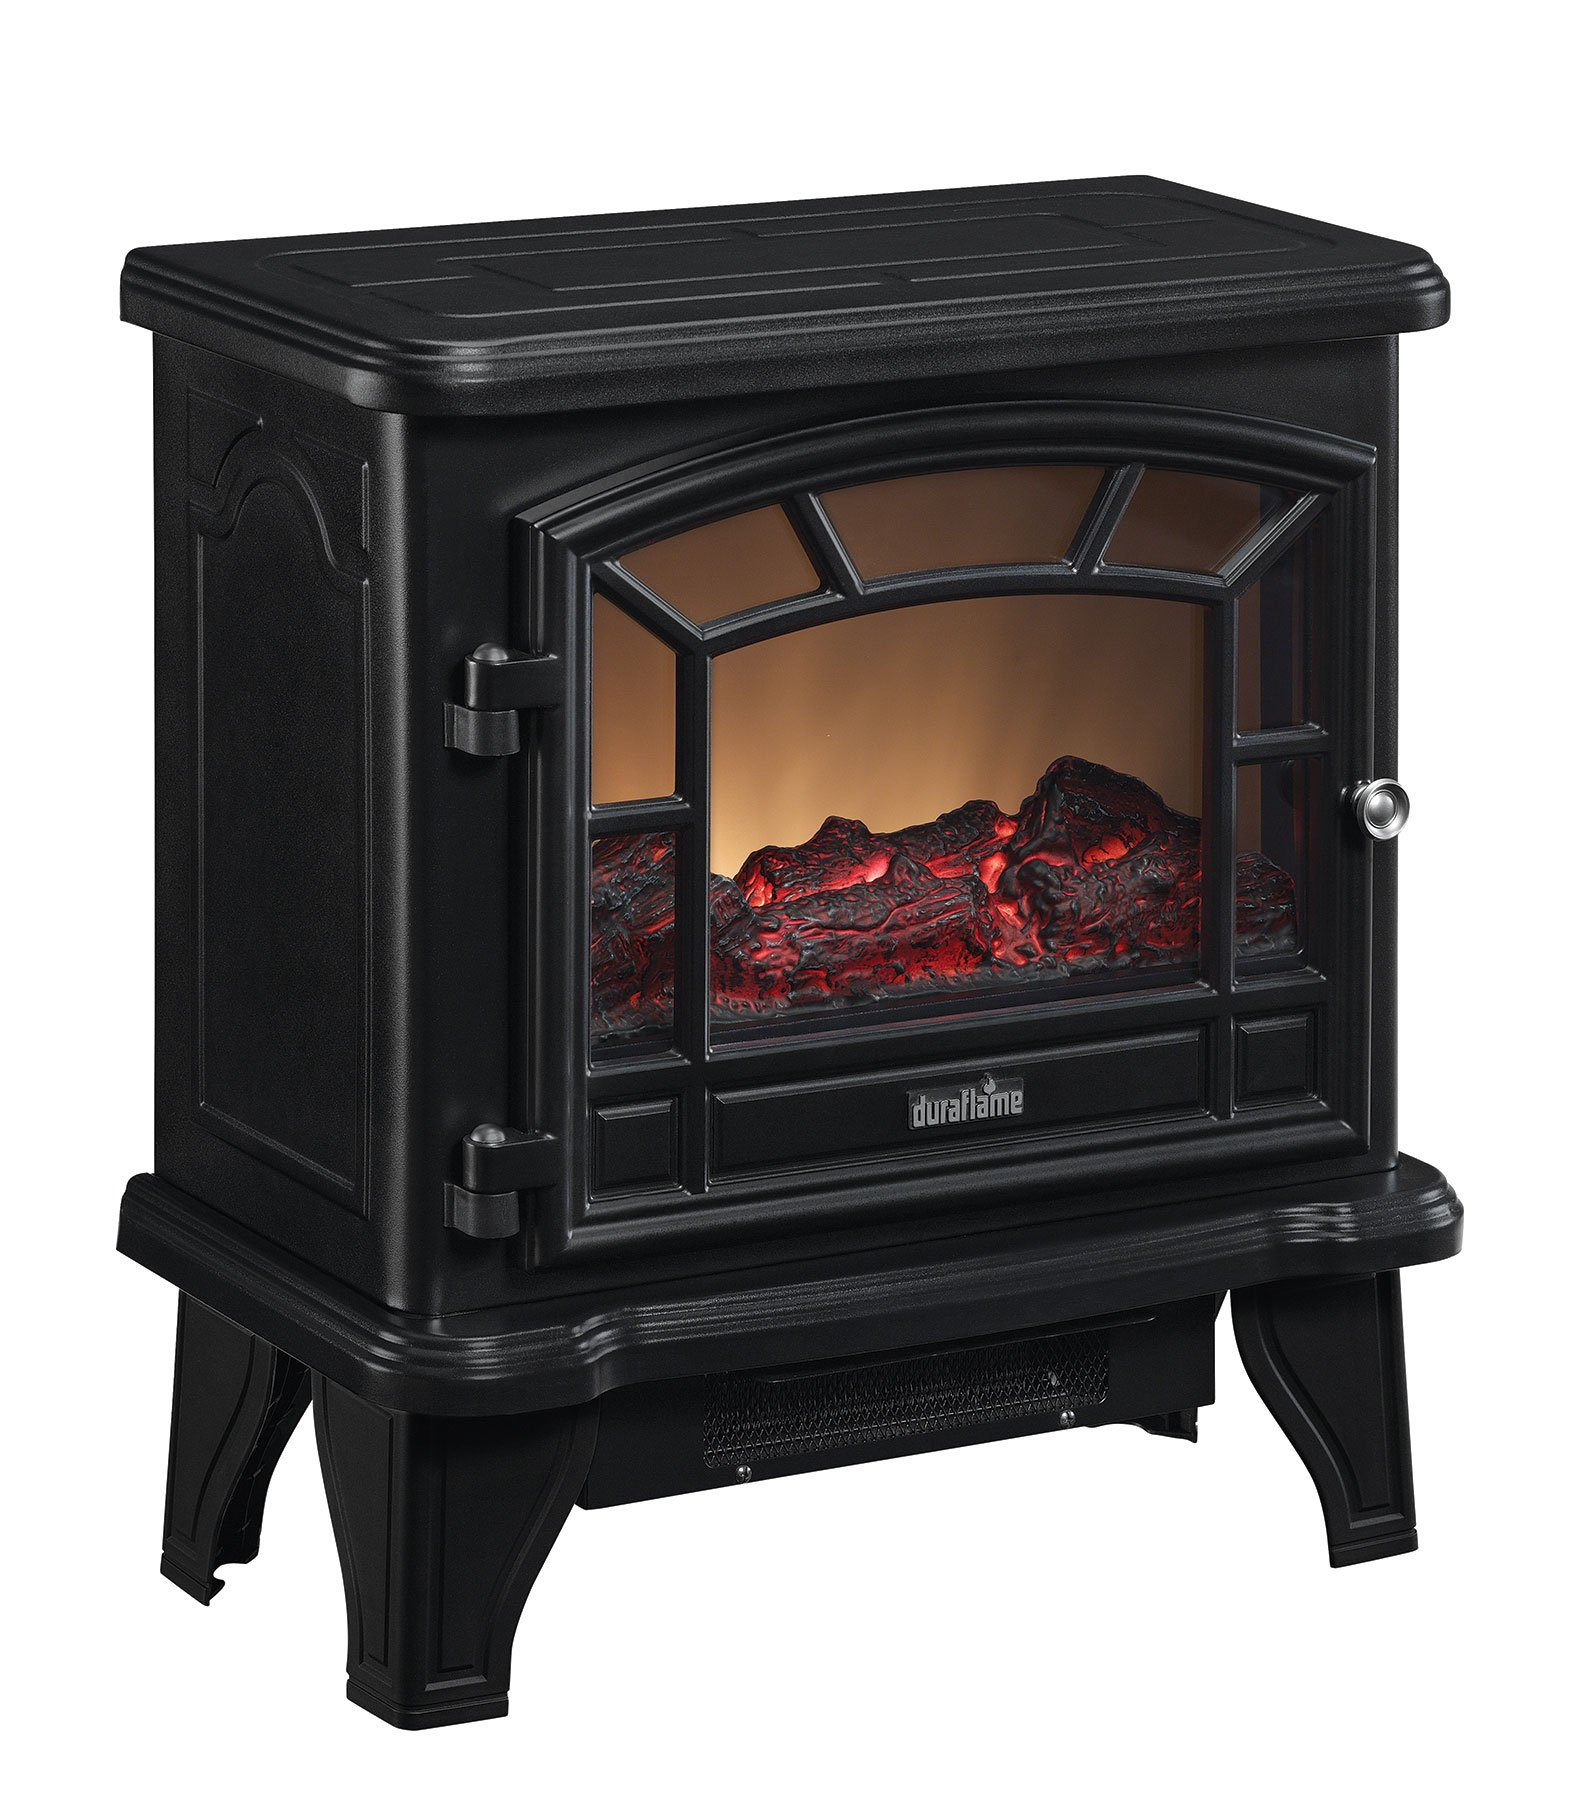 Duraflame DFS-550-21-BLK Maxwell Electric Stove with Heater, Black